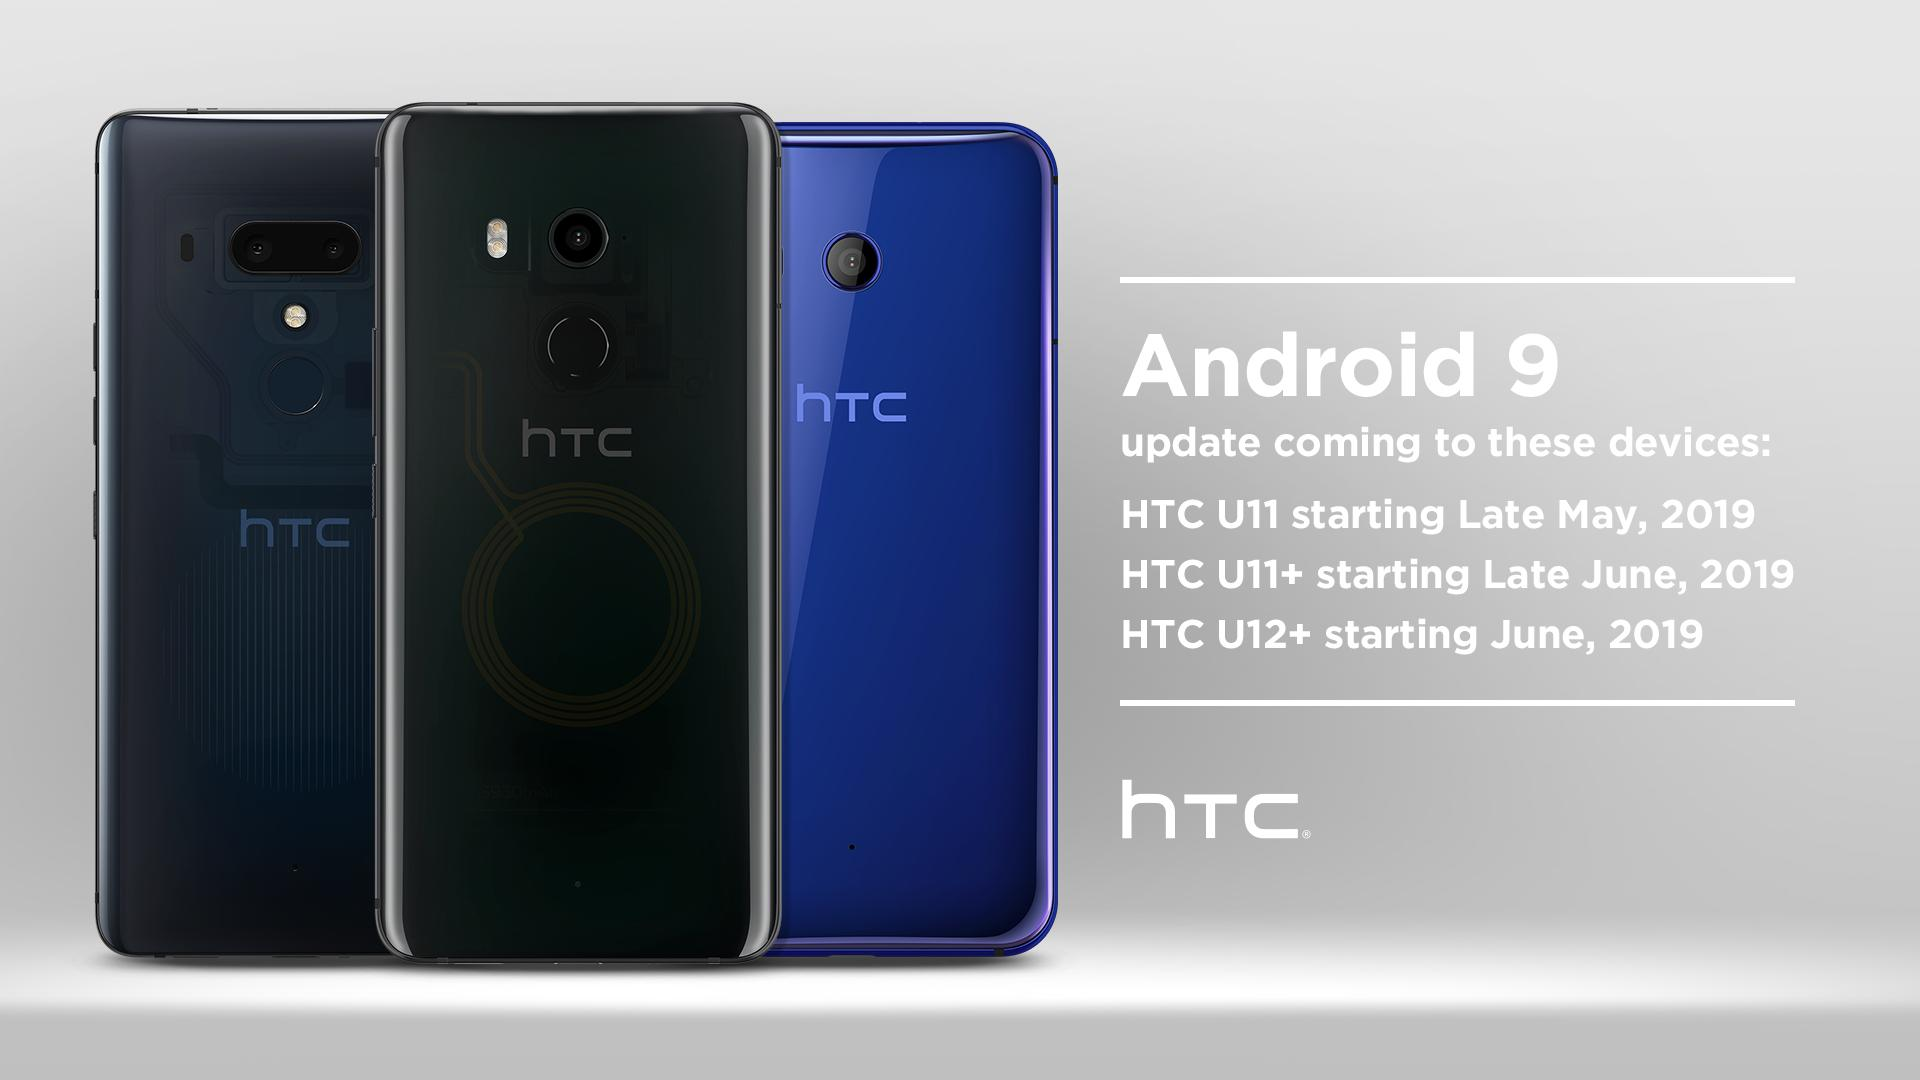 HTC Android 9 Pie update